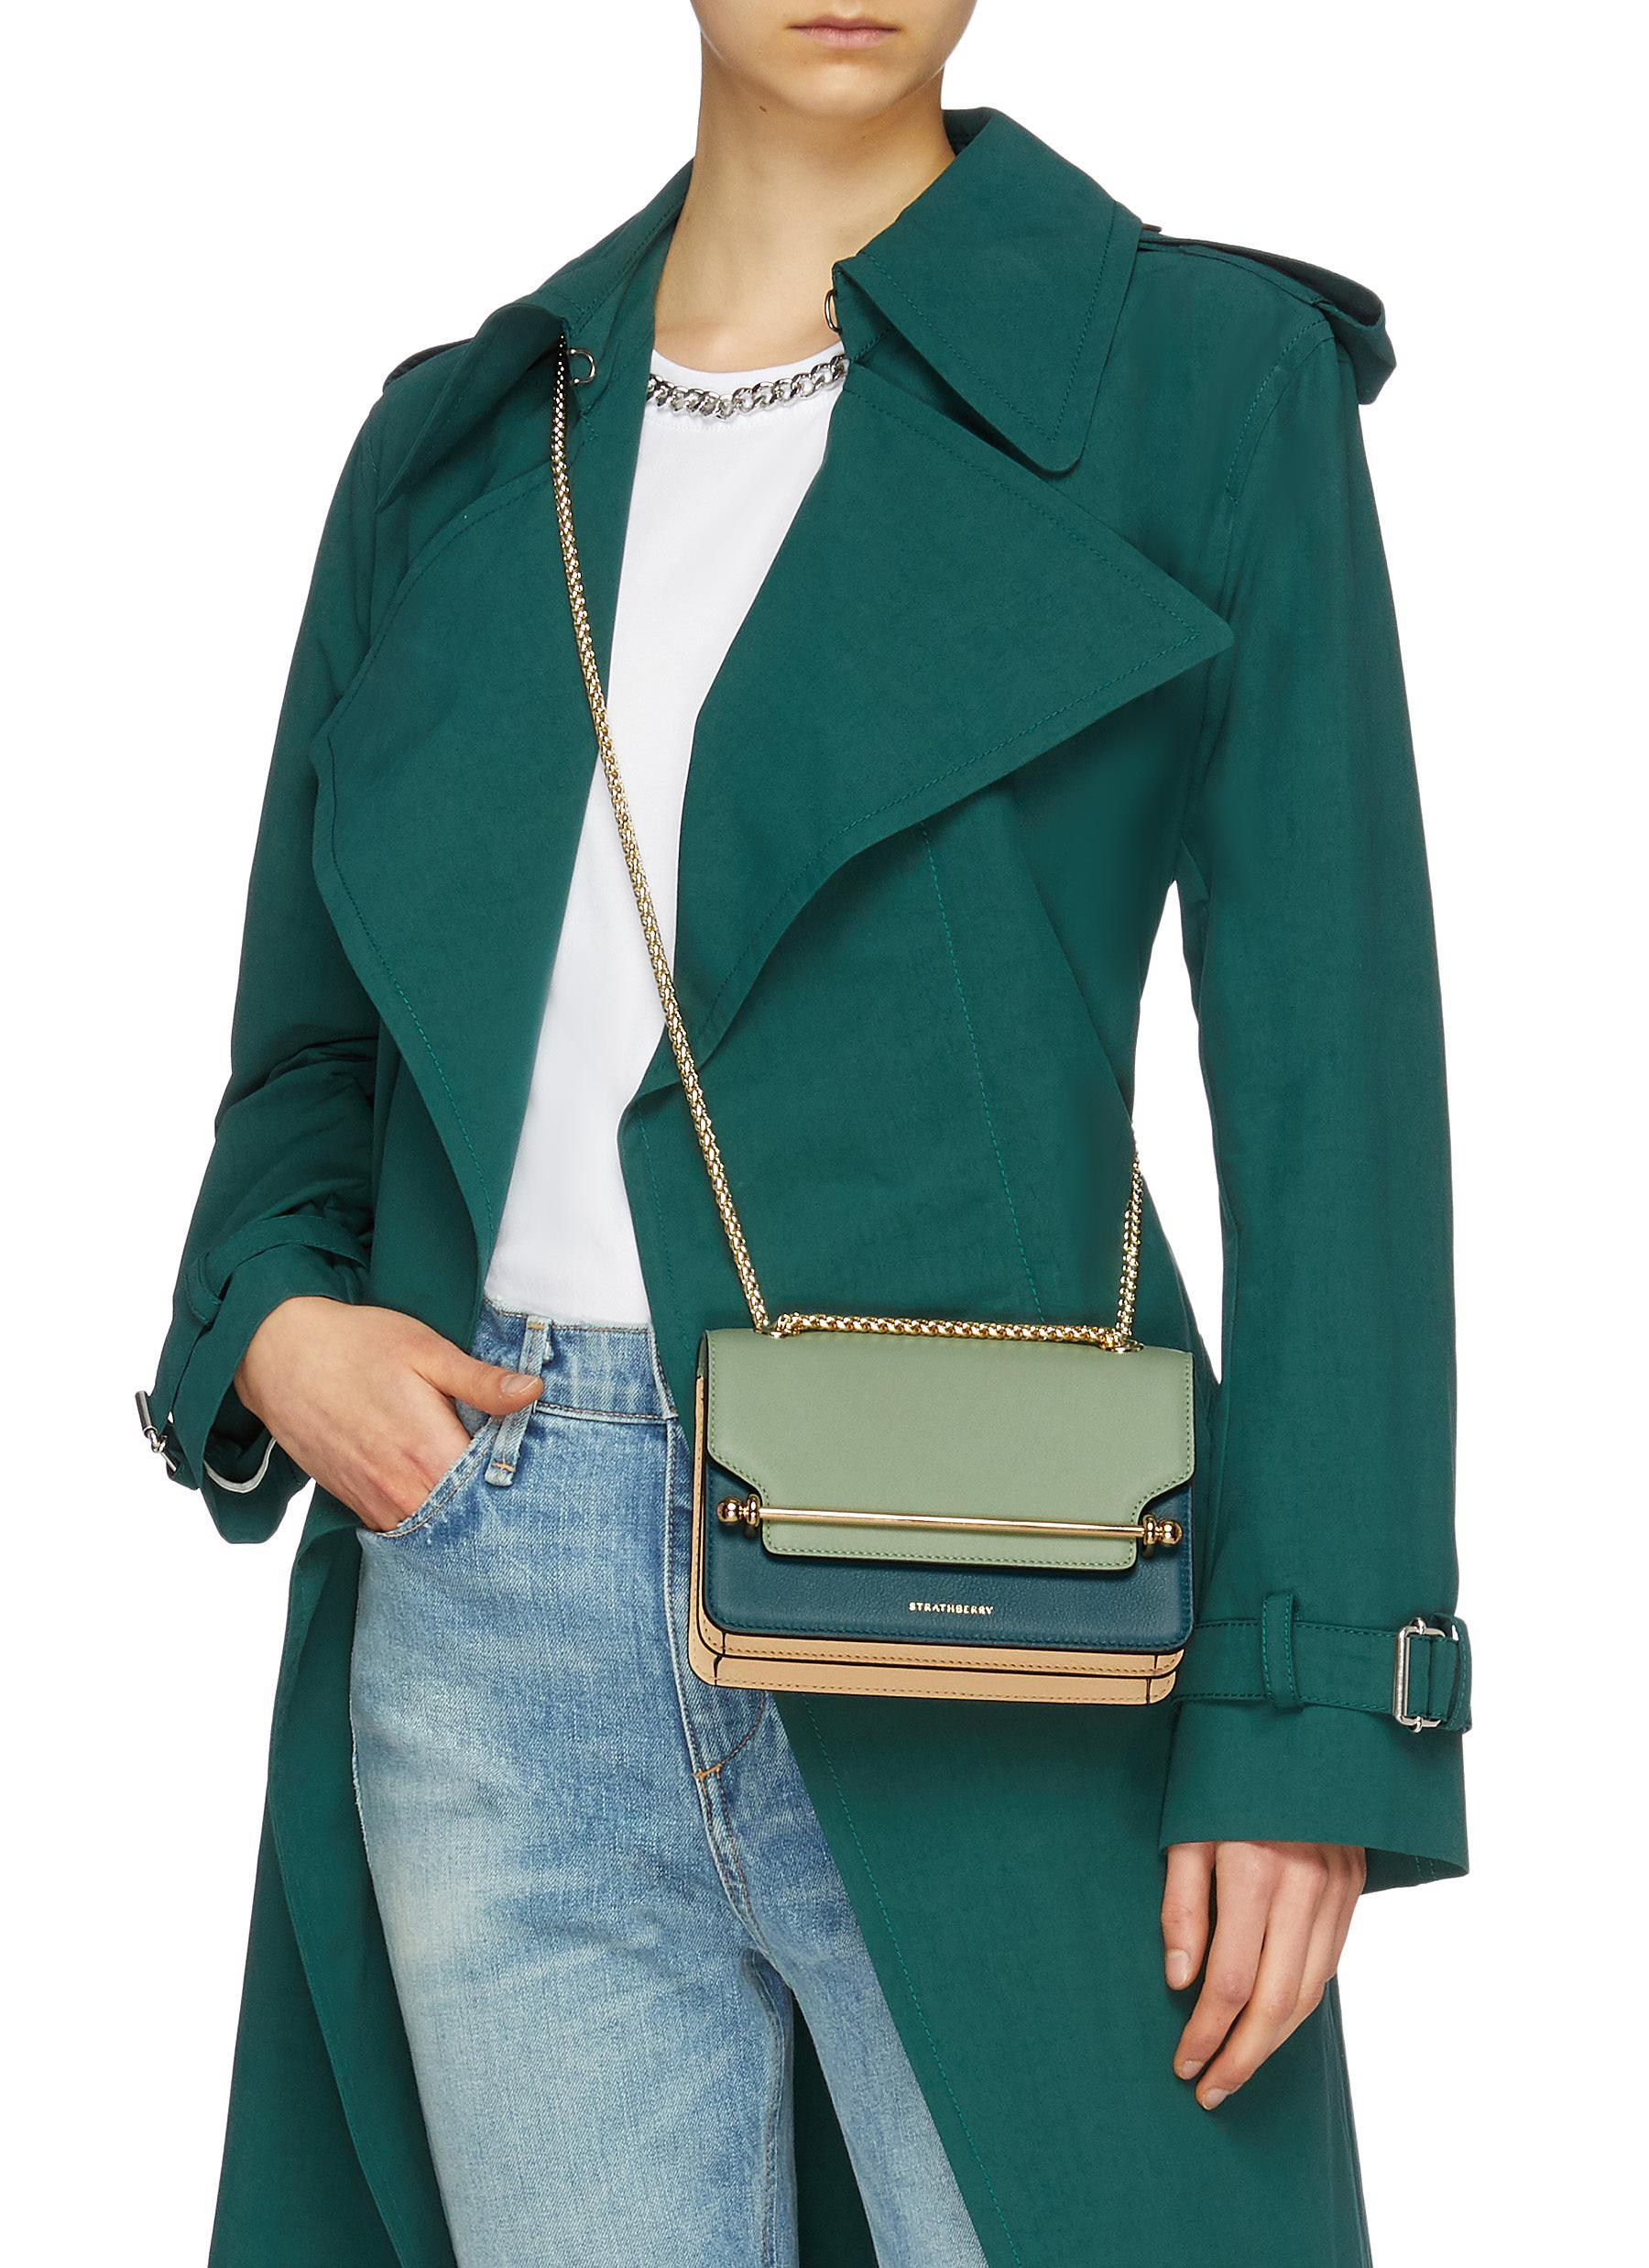 3a9f10927acf Strathberry - Green  east west  Mini Leather Crossbody Bag - Lyst. View  fullscreen